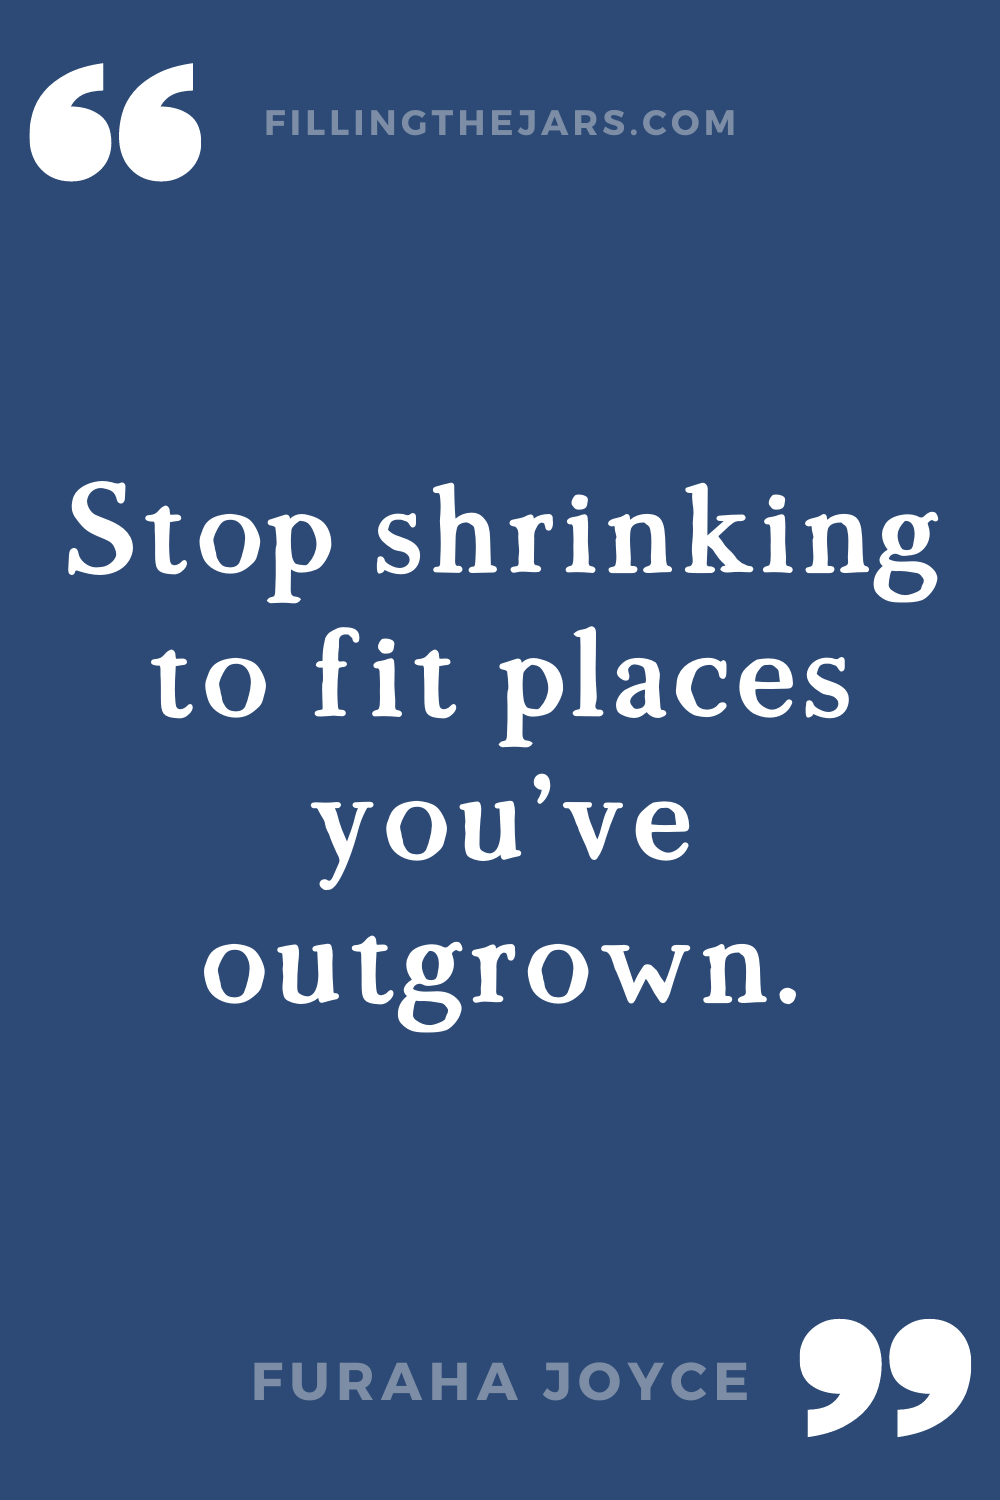 Furaha Joyce stop shrinking short inspirational quote for women in white text on dark blue background.